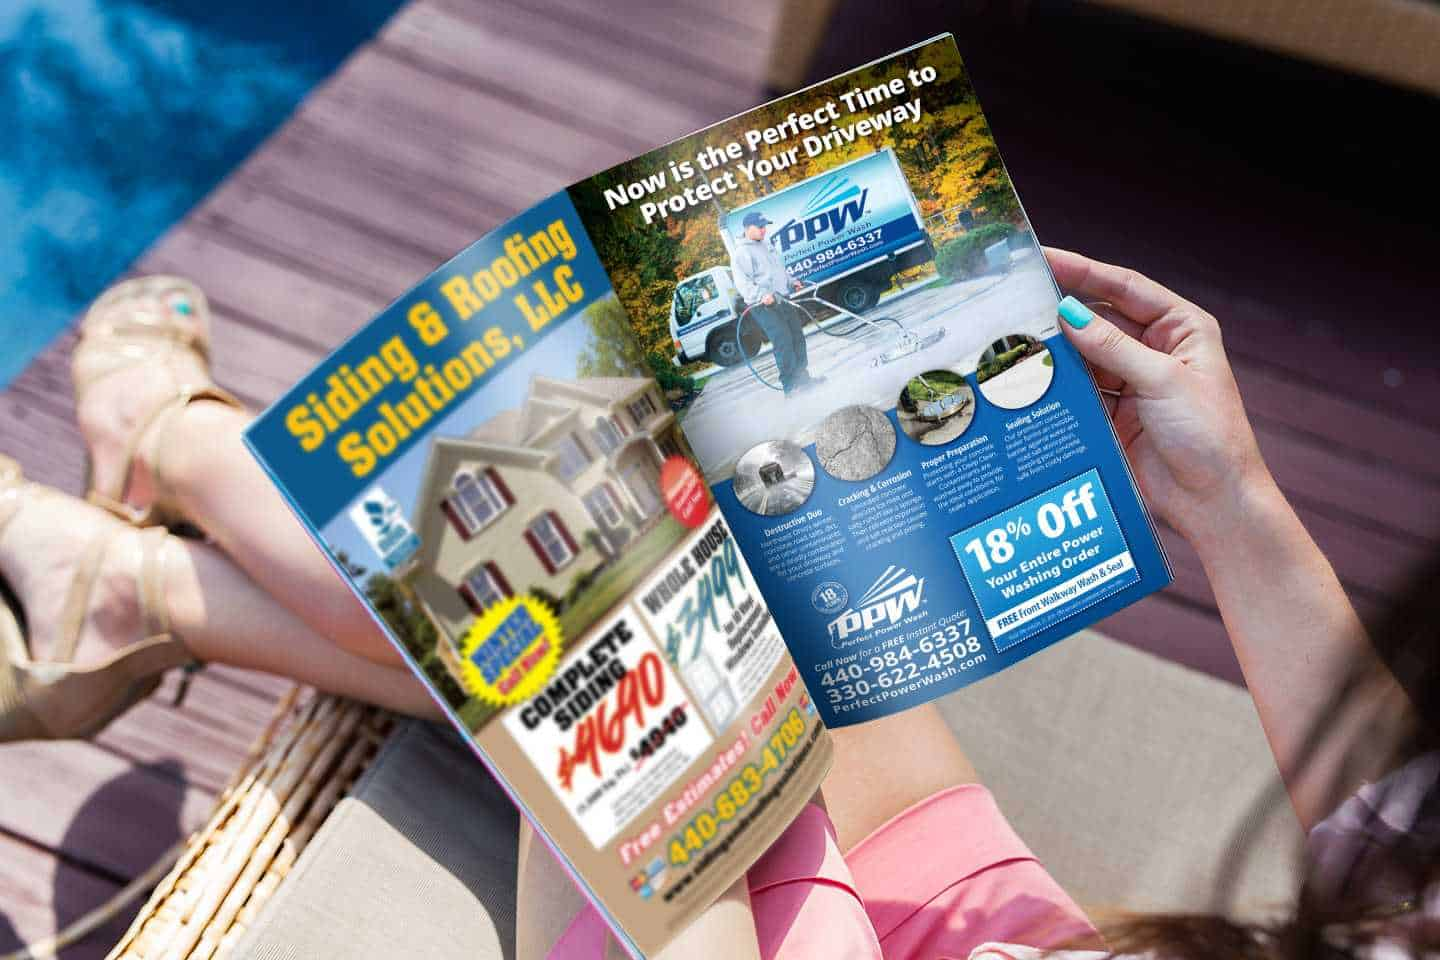 Cleveland and Akron direct mail marketing magazine including the benefits of digital marketing and email marketing services